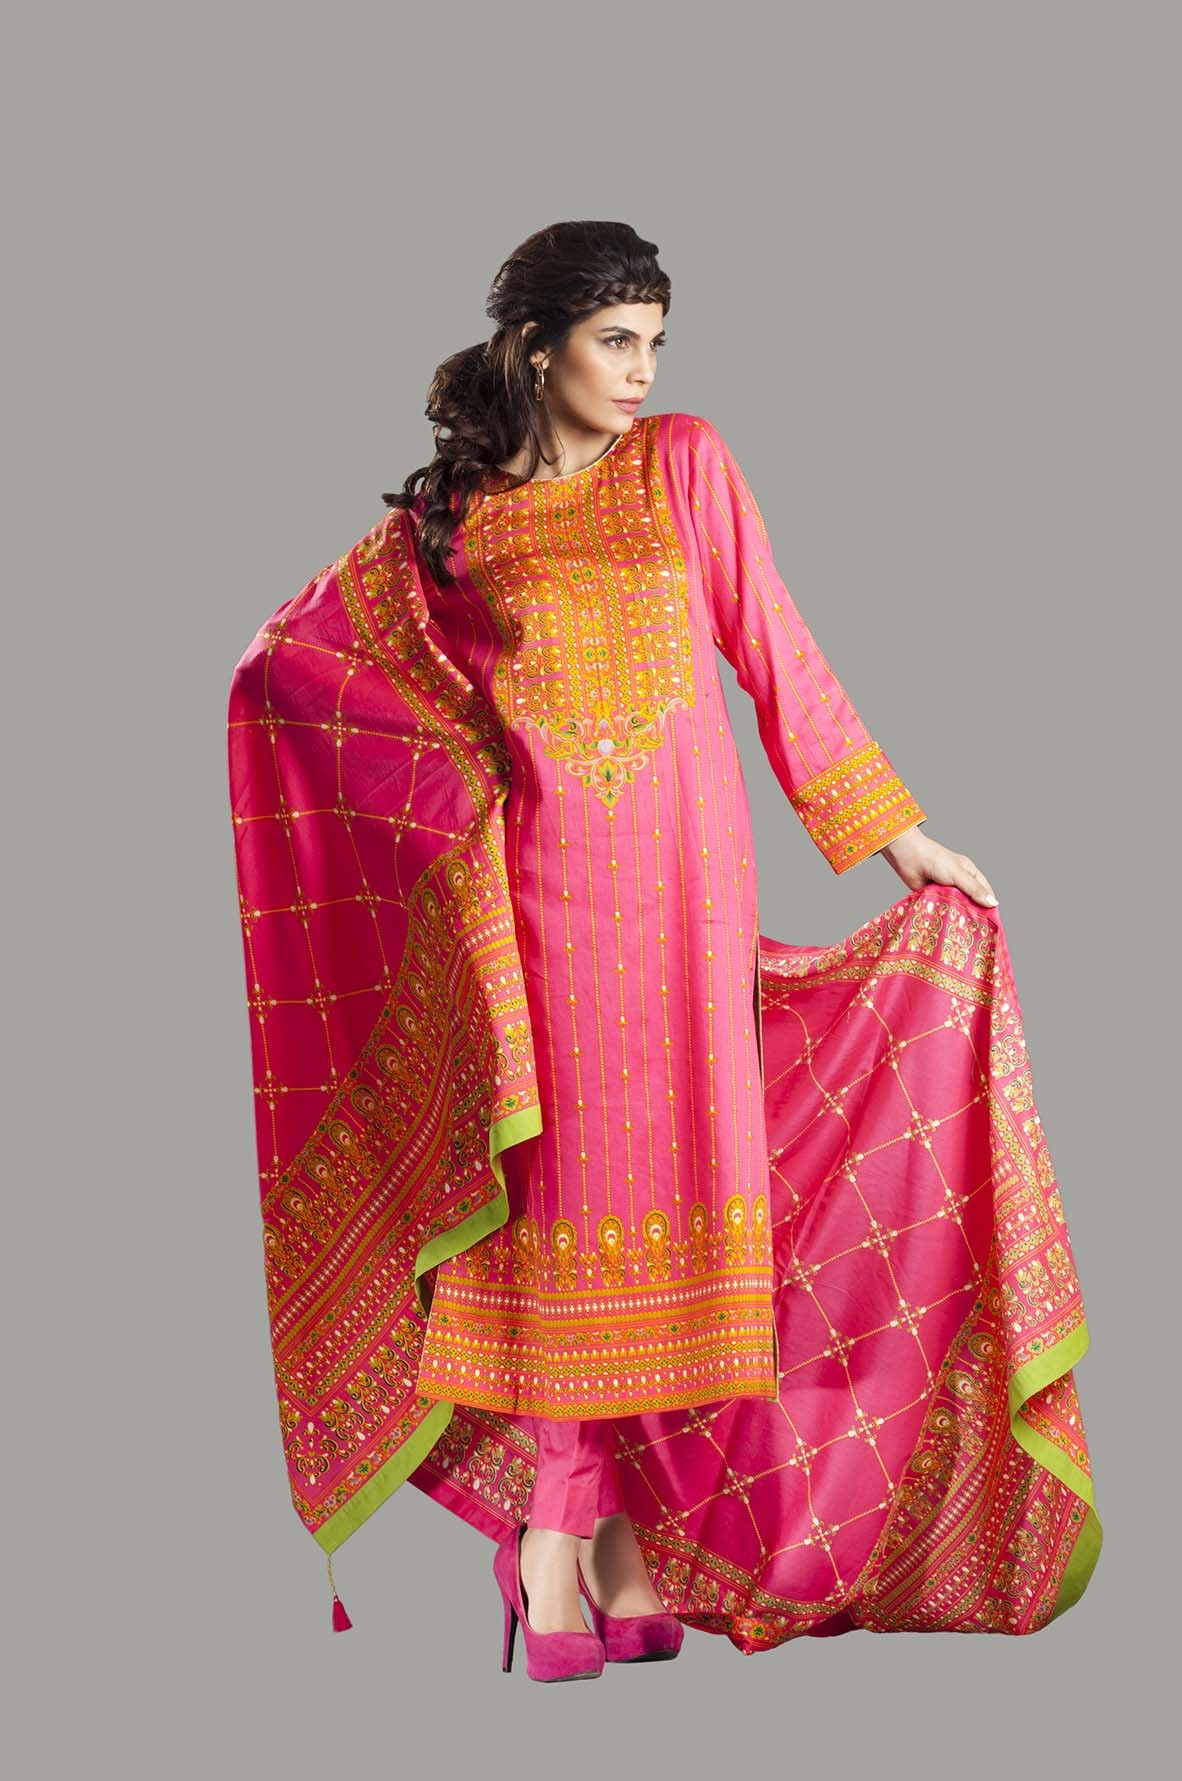 Kayseria Latest Winter Prints Best Shawls & Dresses 2014